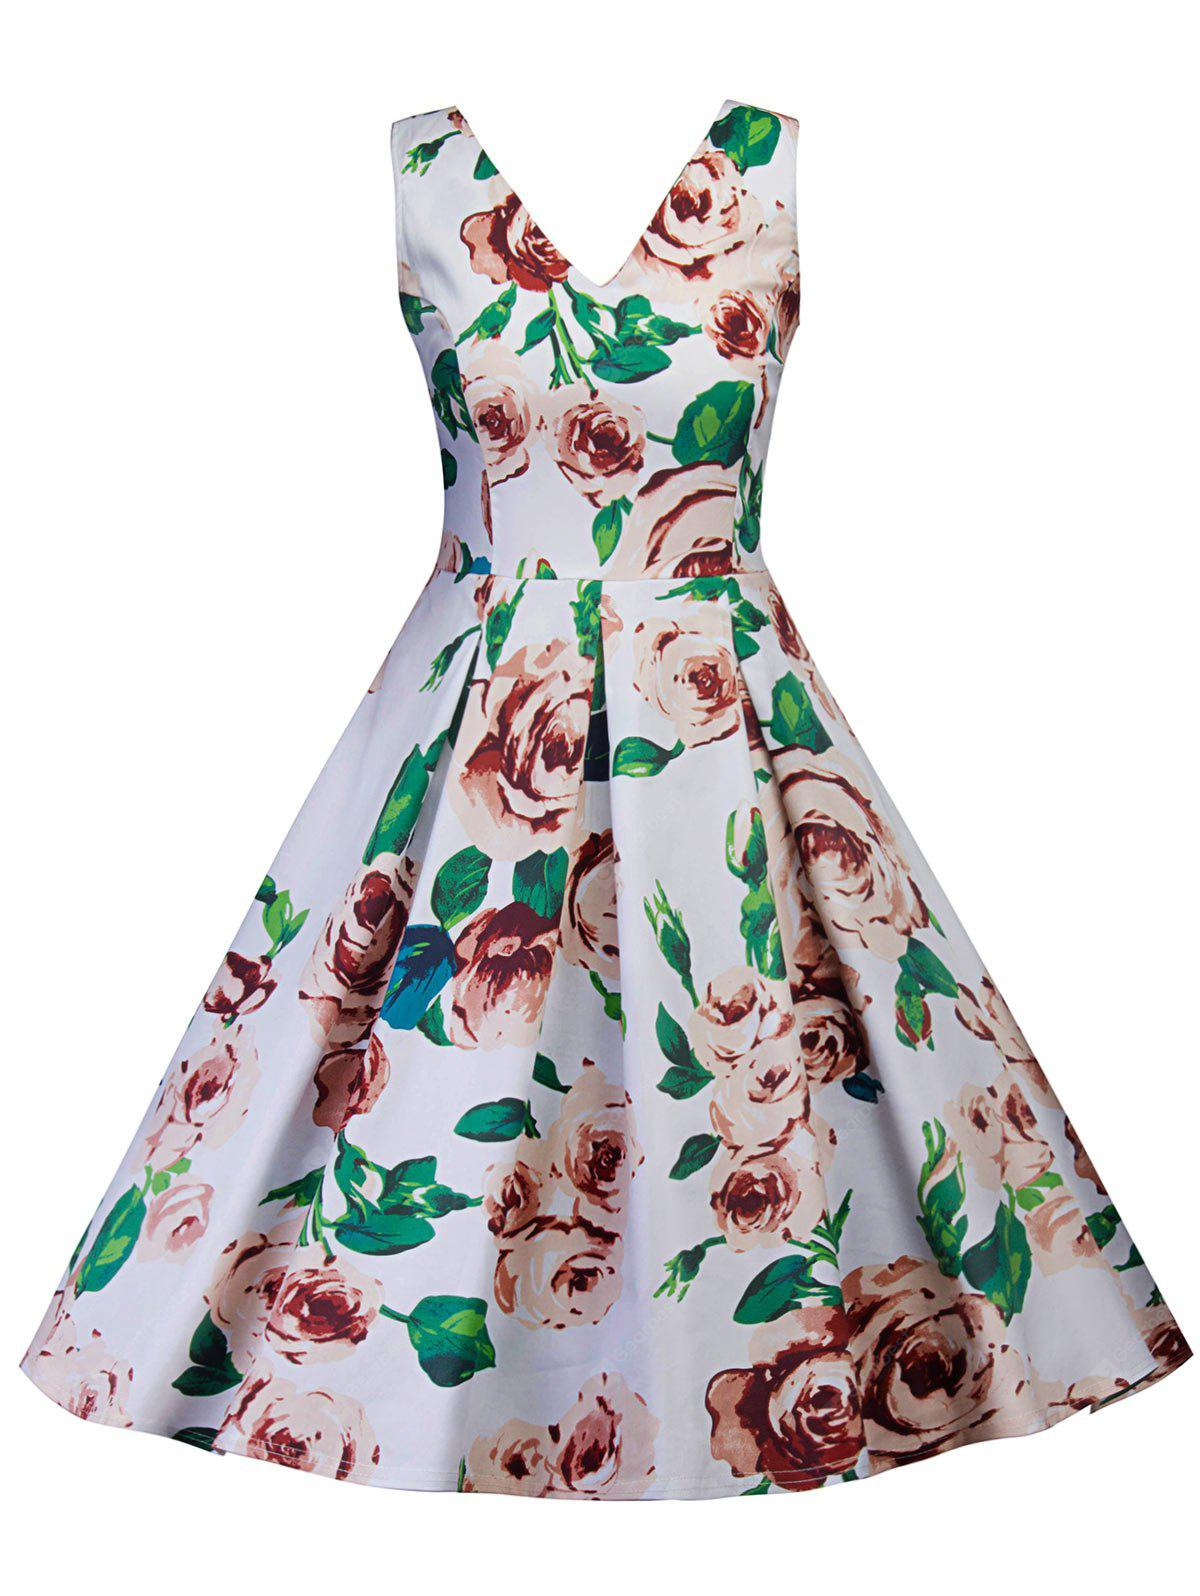 Retro Floral Print Skater Pin Up Dress